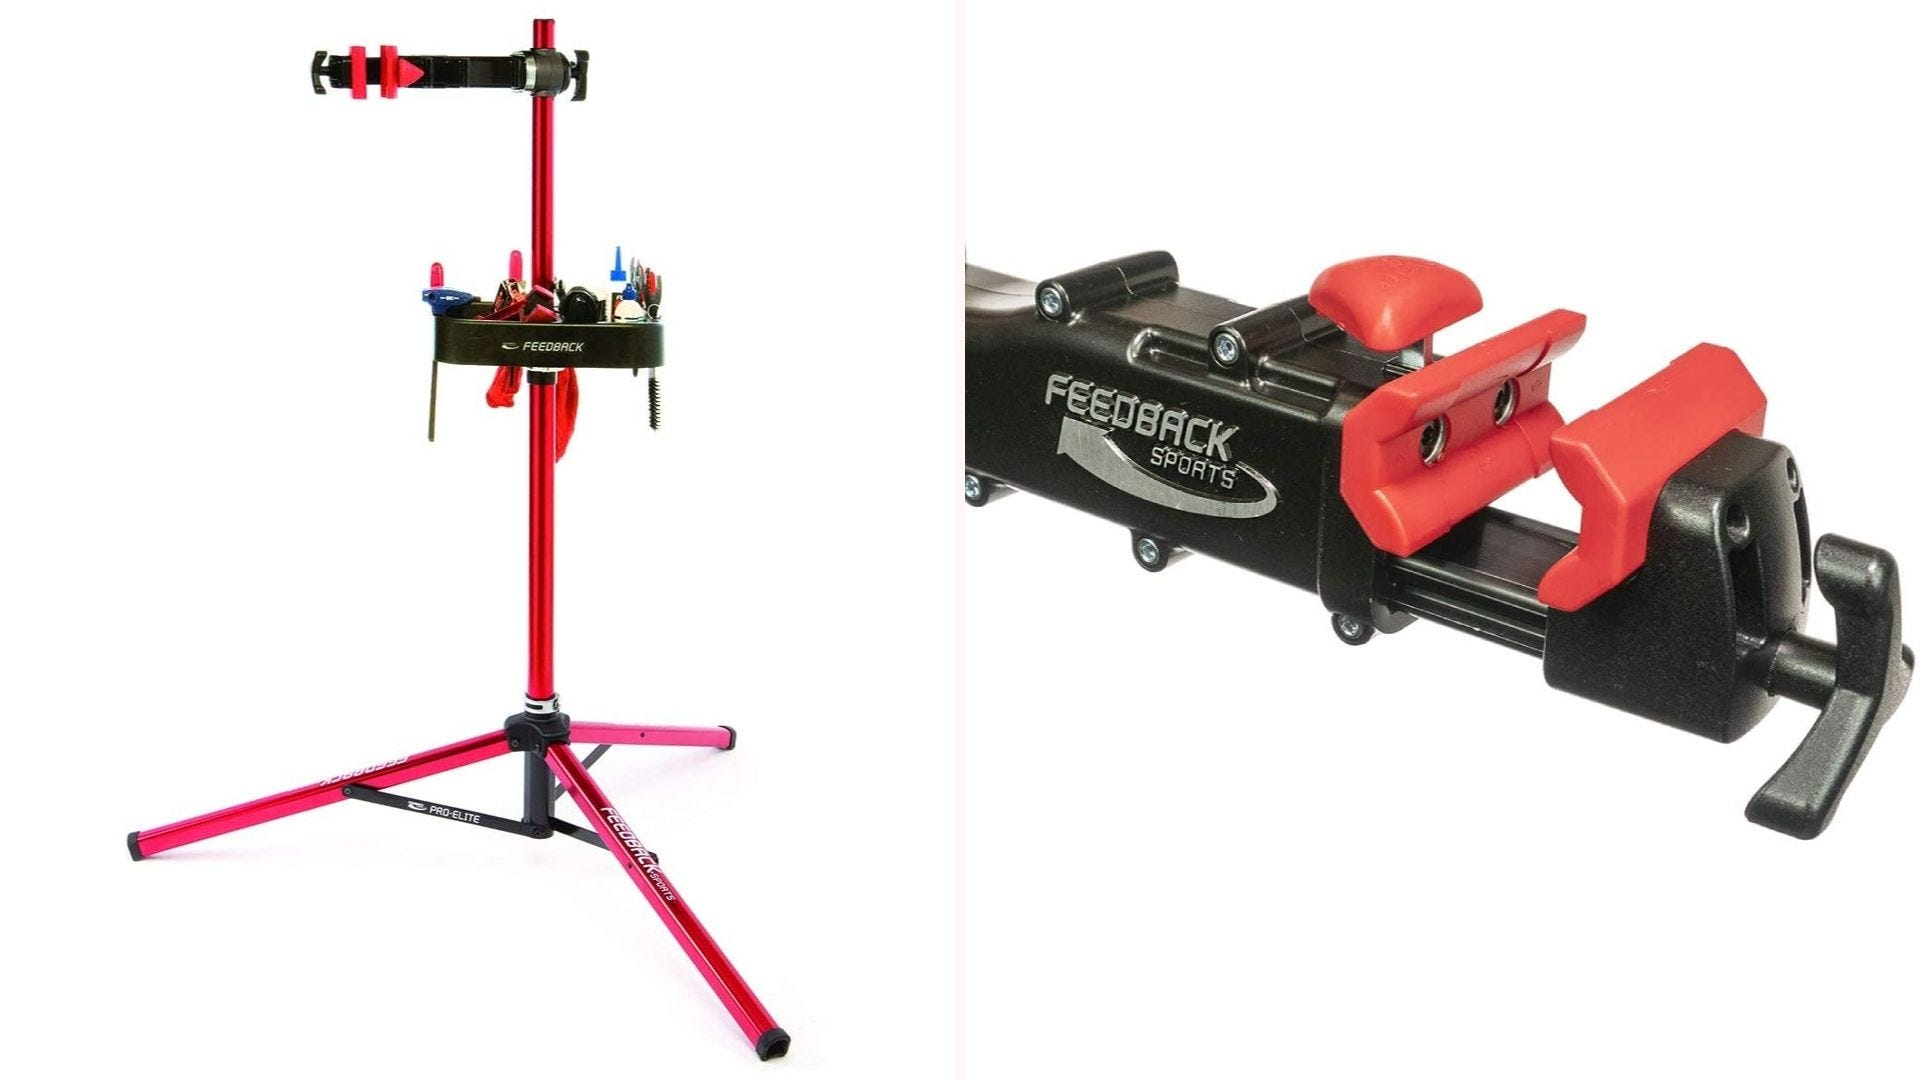 On the left, a red bike stand with three support legs. On the right, a clamp with red accents.